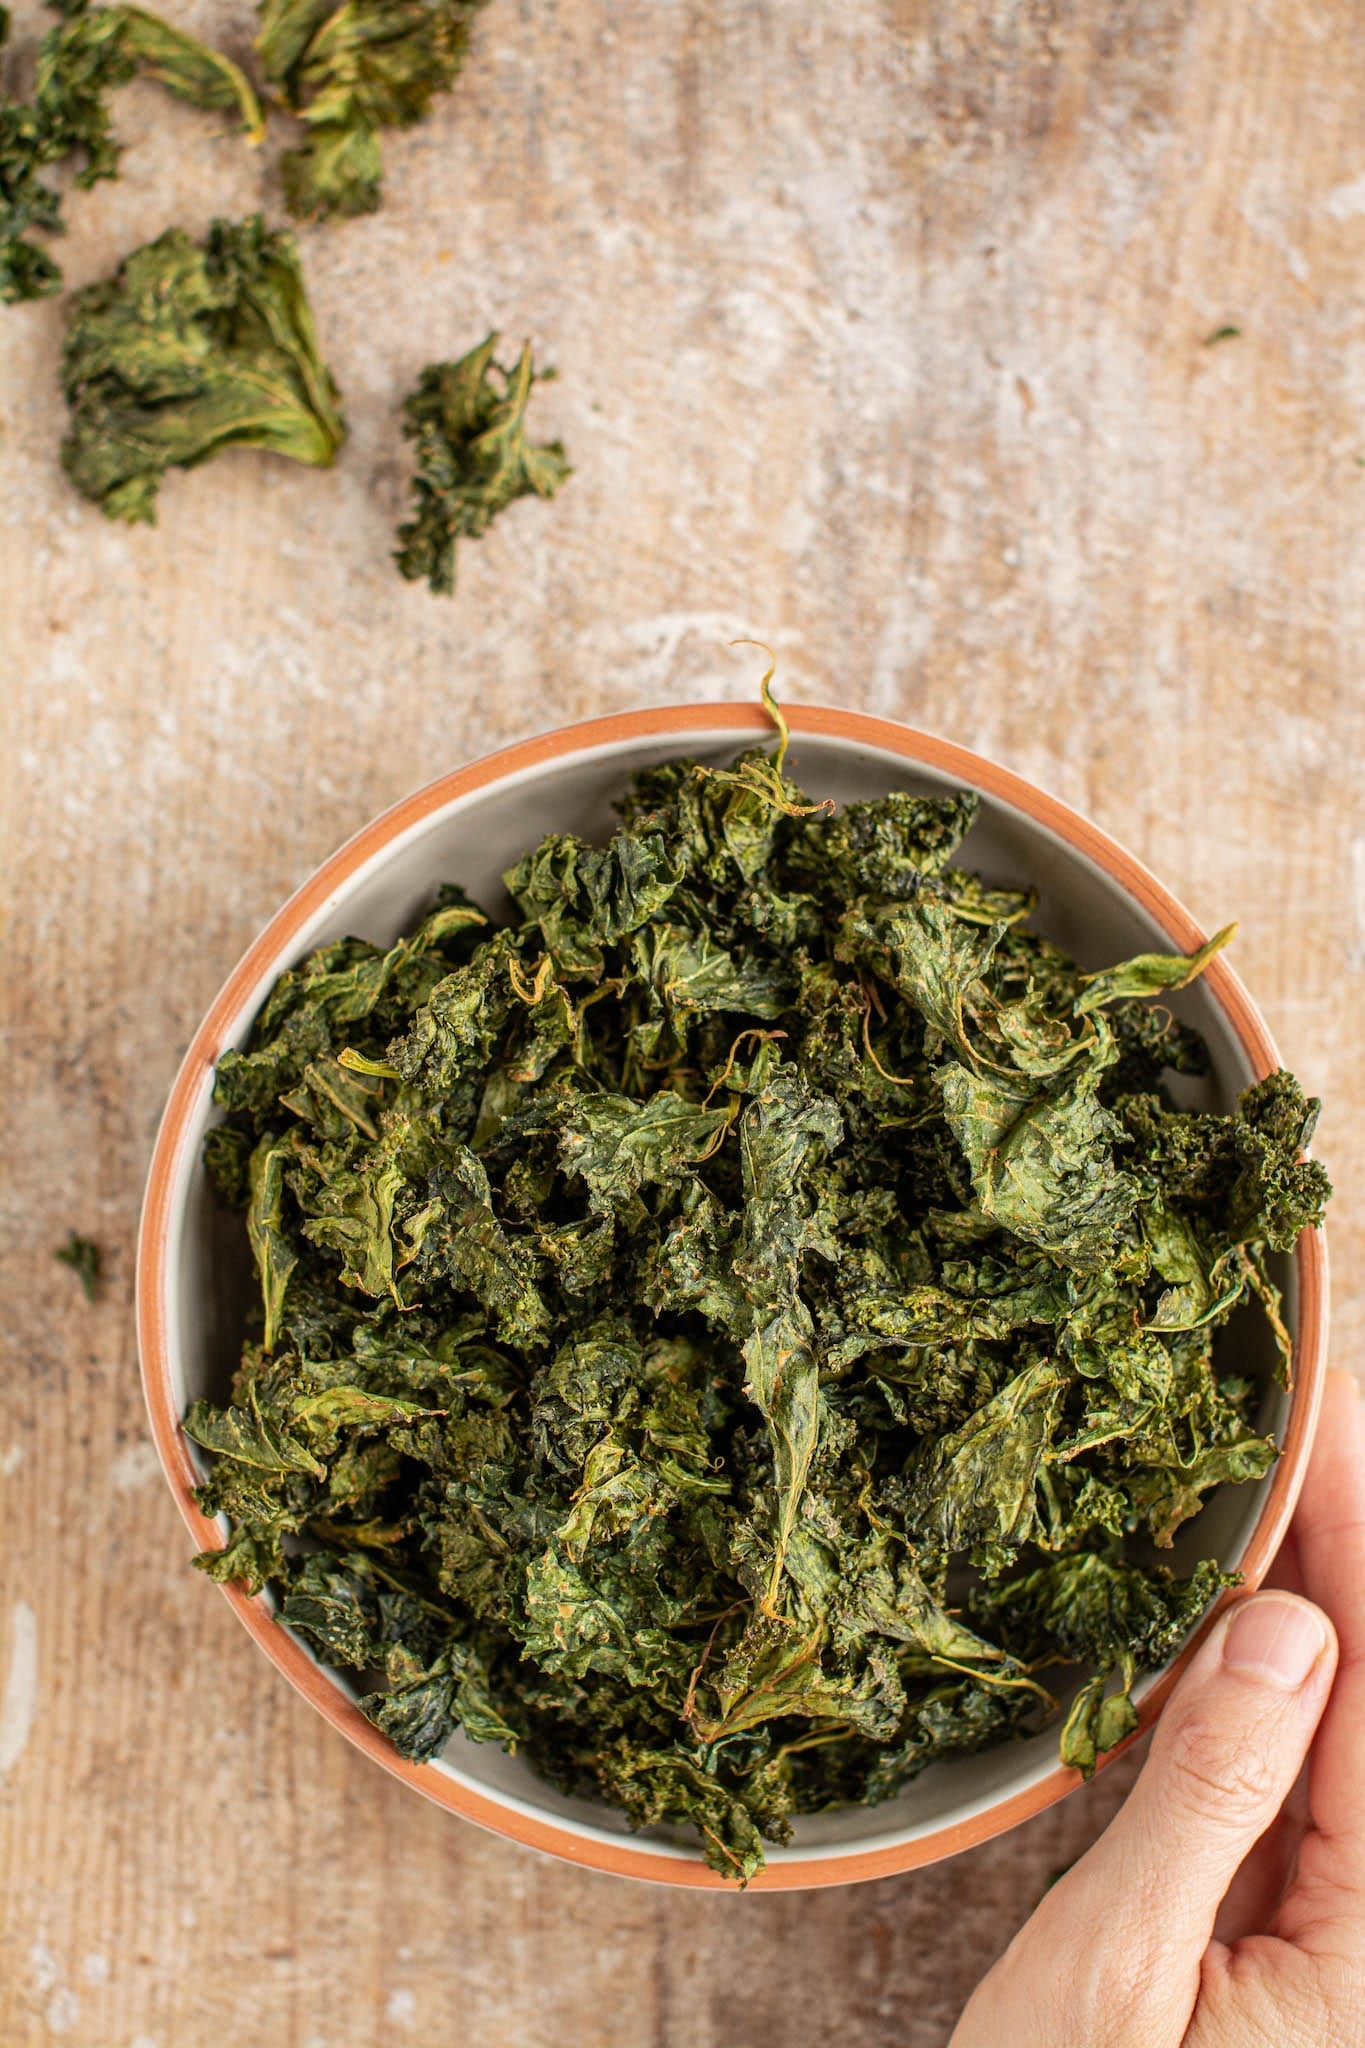 How to Make Easy Baked Kale Chips [Gluten-Free, Oil-Free]